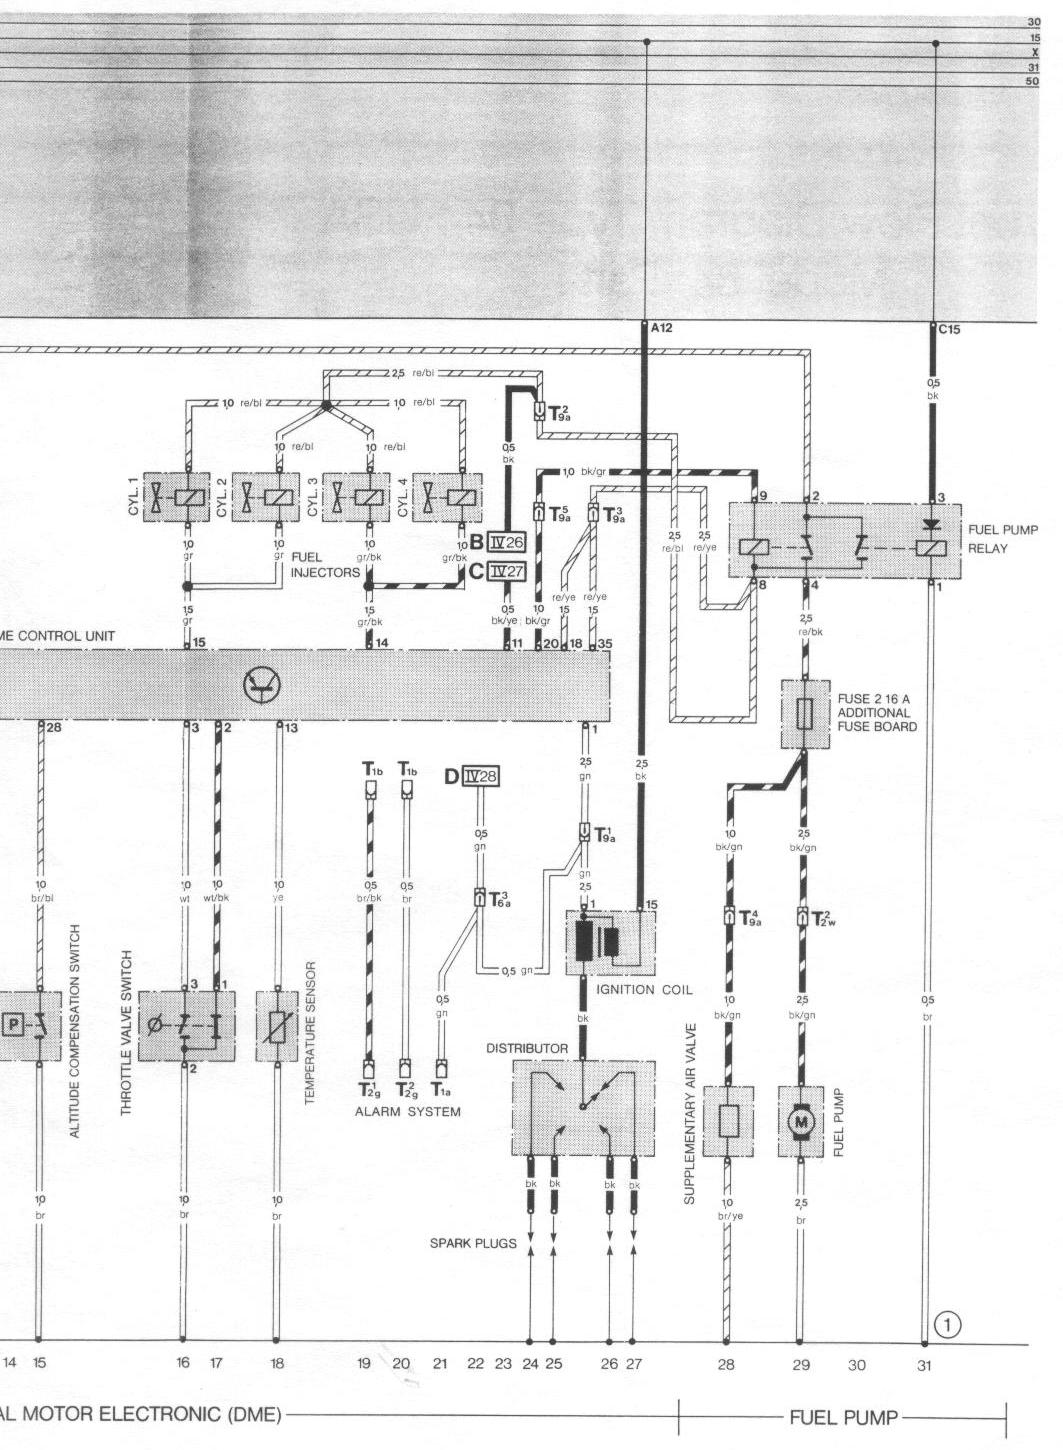 944_84_1_2 pelican parts porsche 924 944 electrical diagrams 1983 porsche 944 fuse box diagram at eliteediting.co